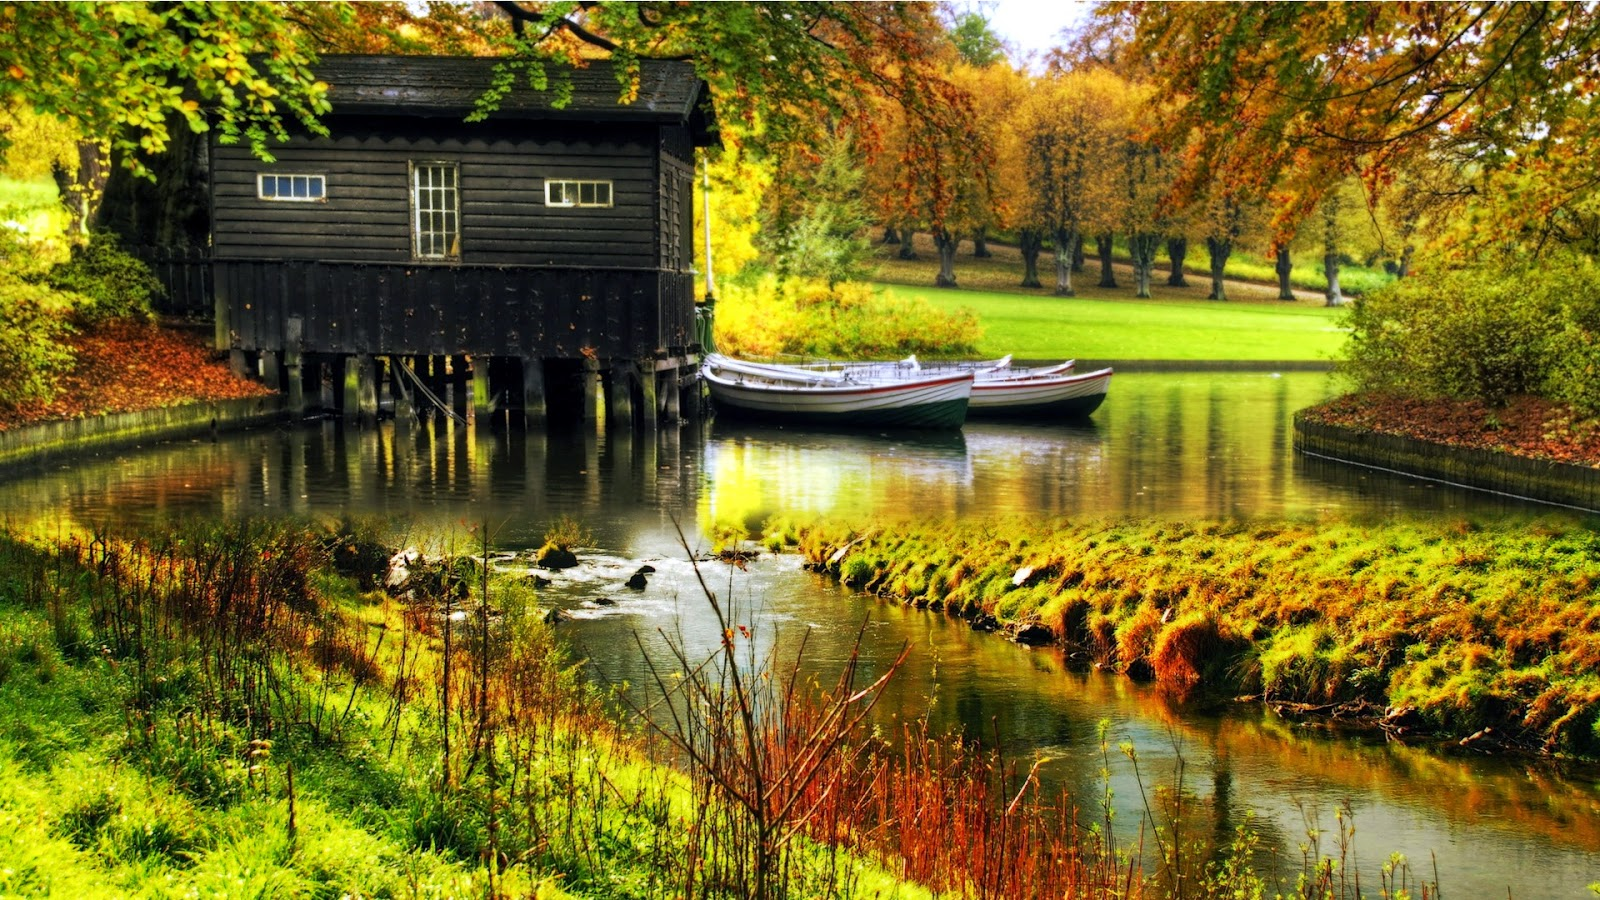 Free Hd Wallpapers Lake View Nature Wallpaper Download For Free